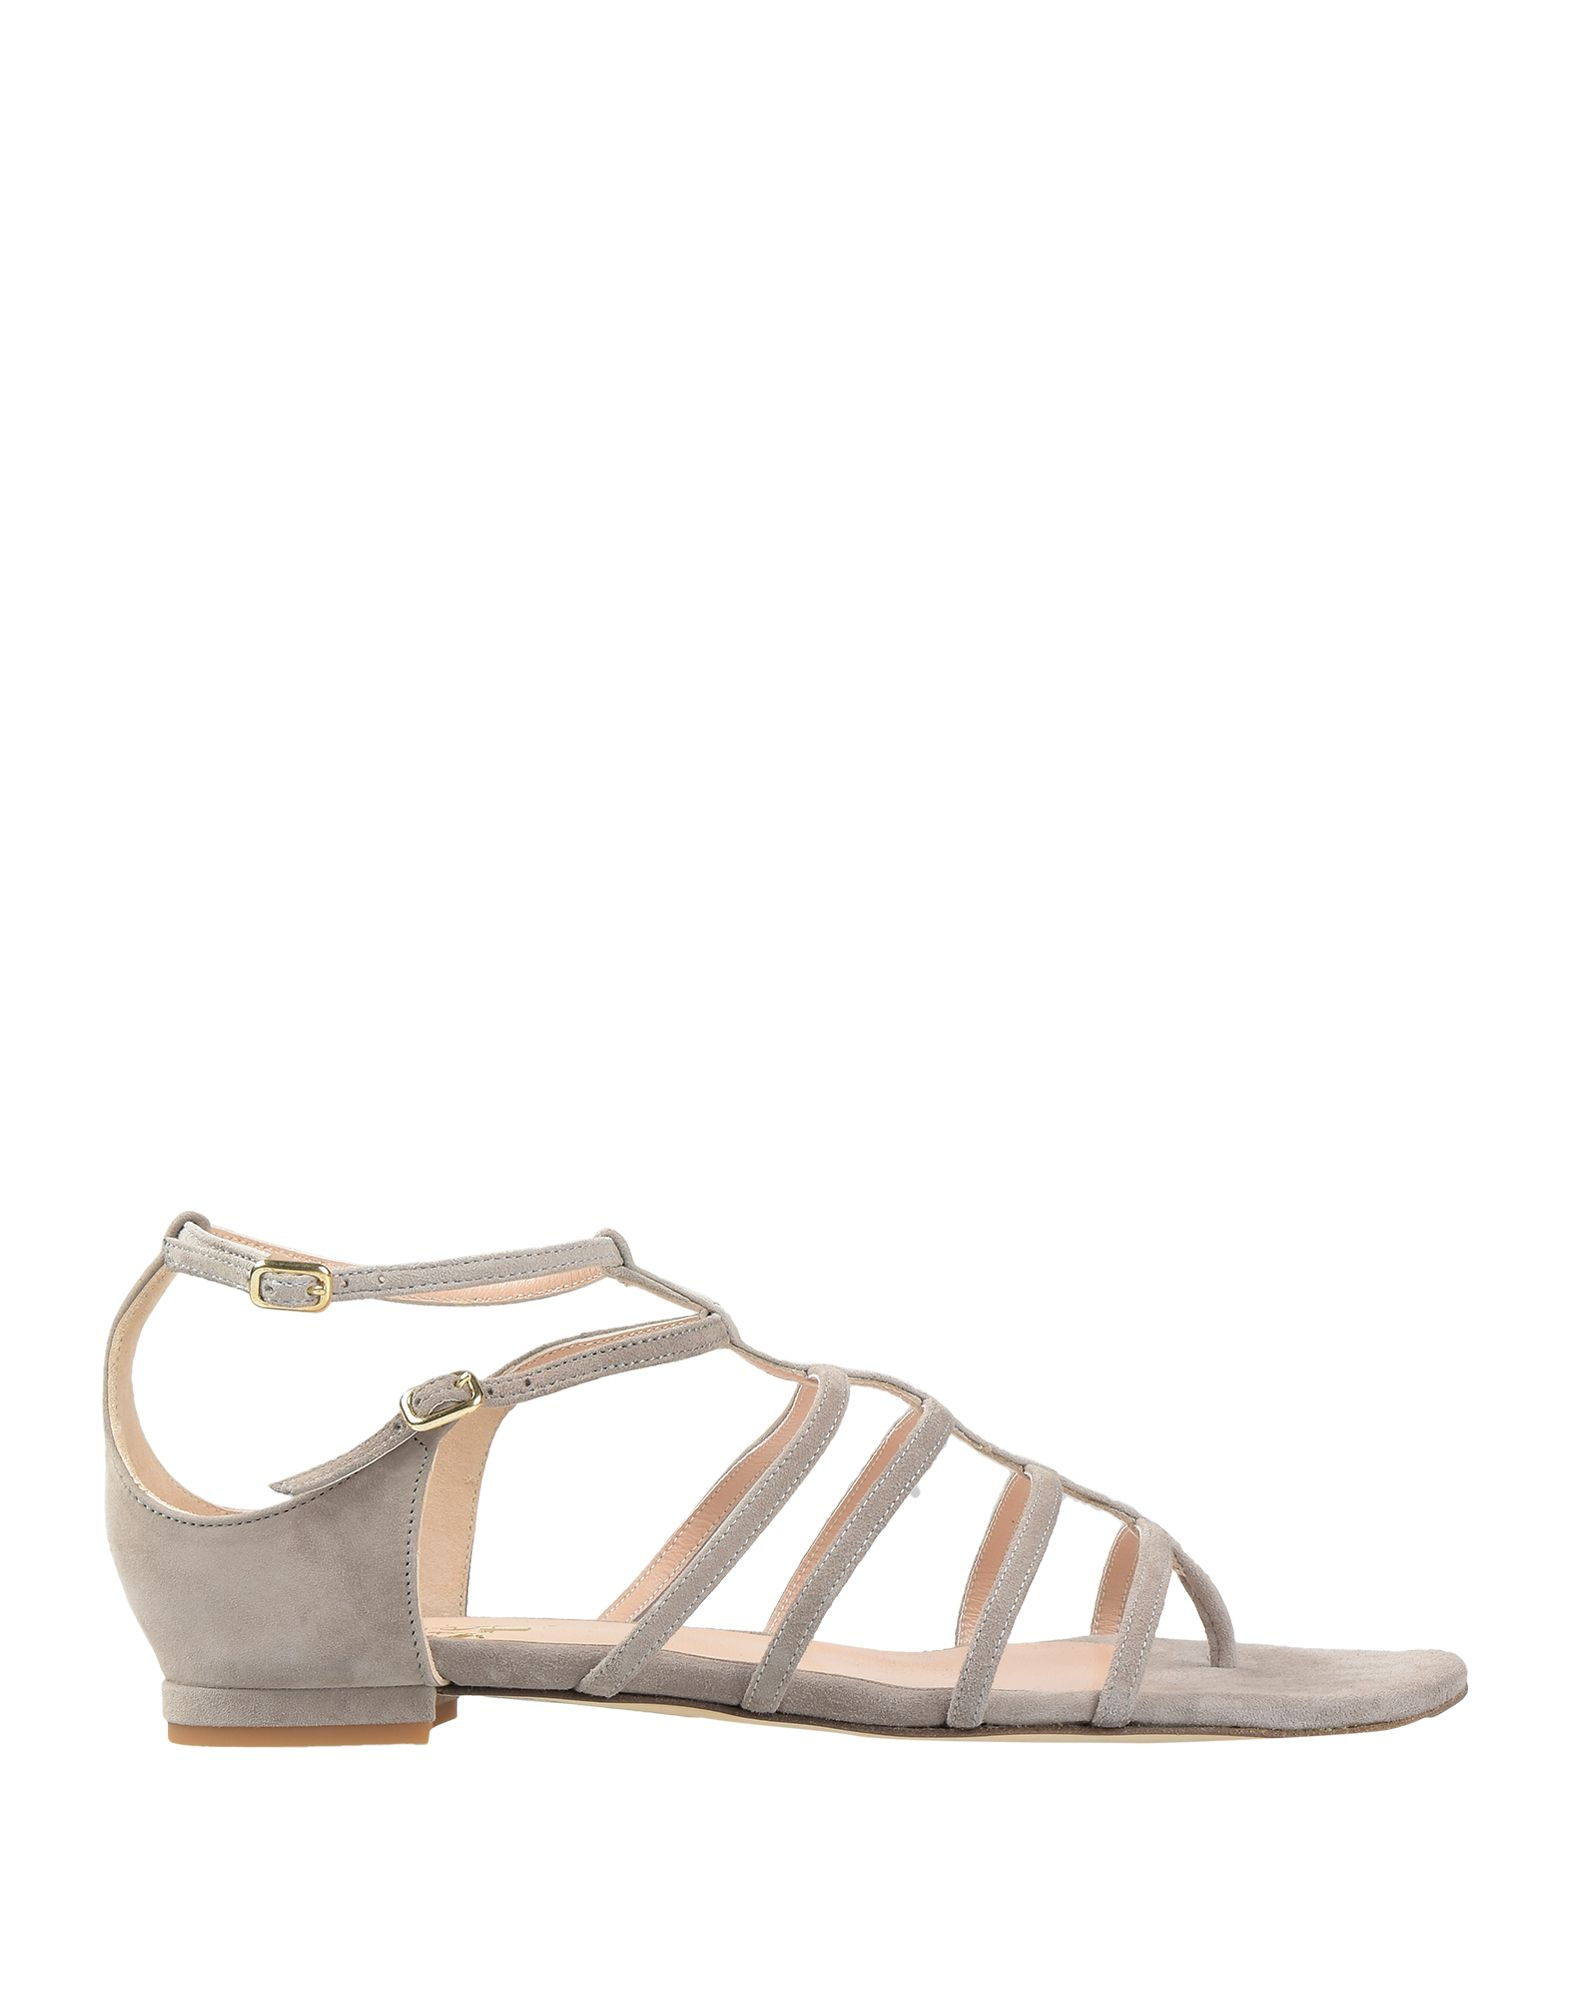 ELEVENTY Toe strap sandals. suede effect, no appliqués, solid color, buckle, round toeline, flat, leather lining, leather sole, contains non-textile parts of animal origin. Soft Leather